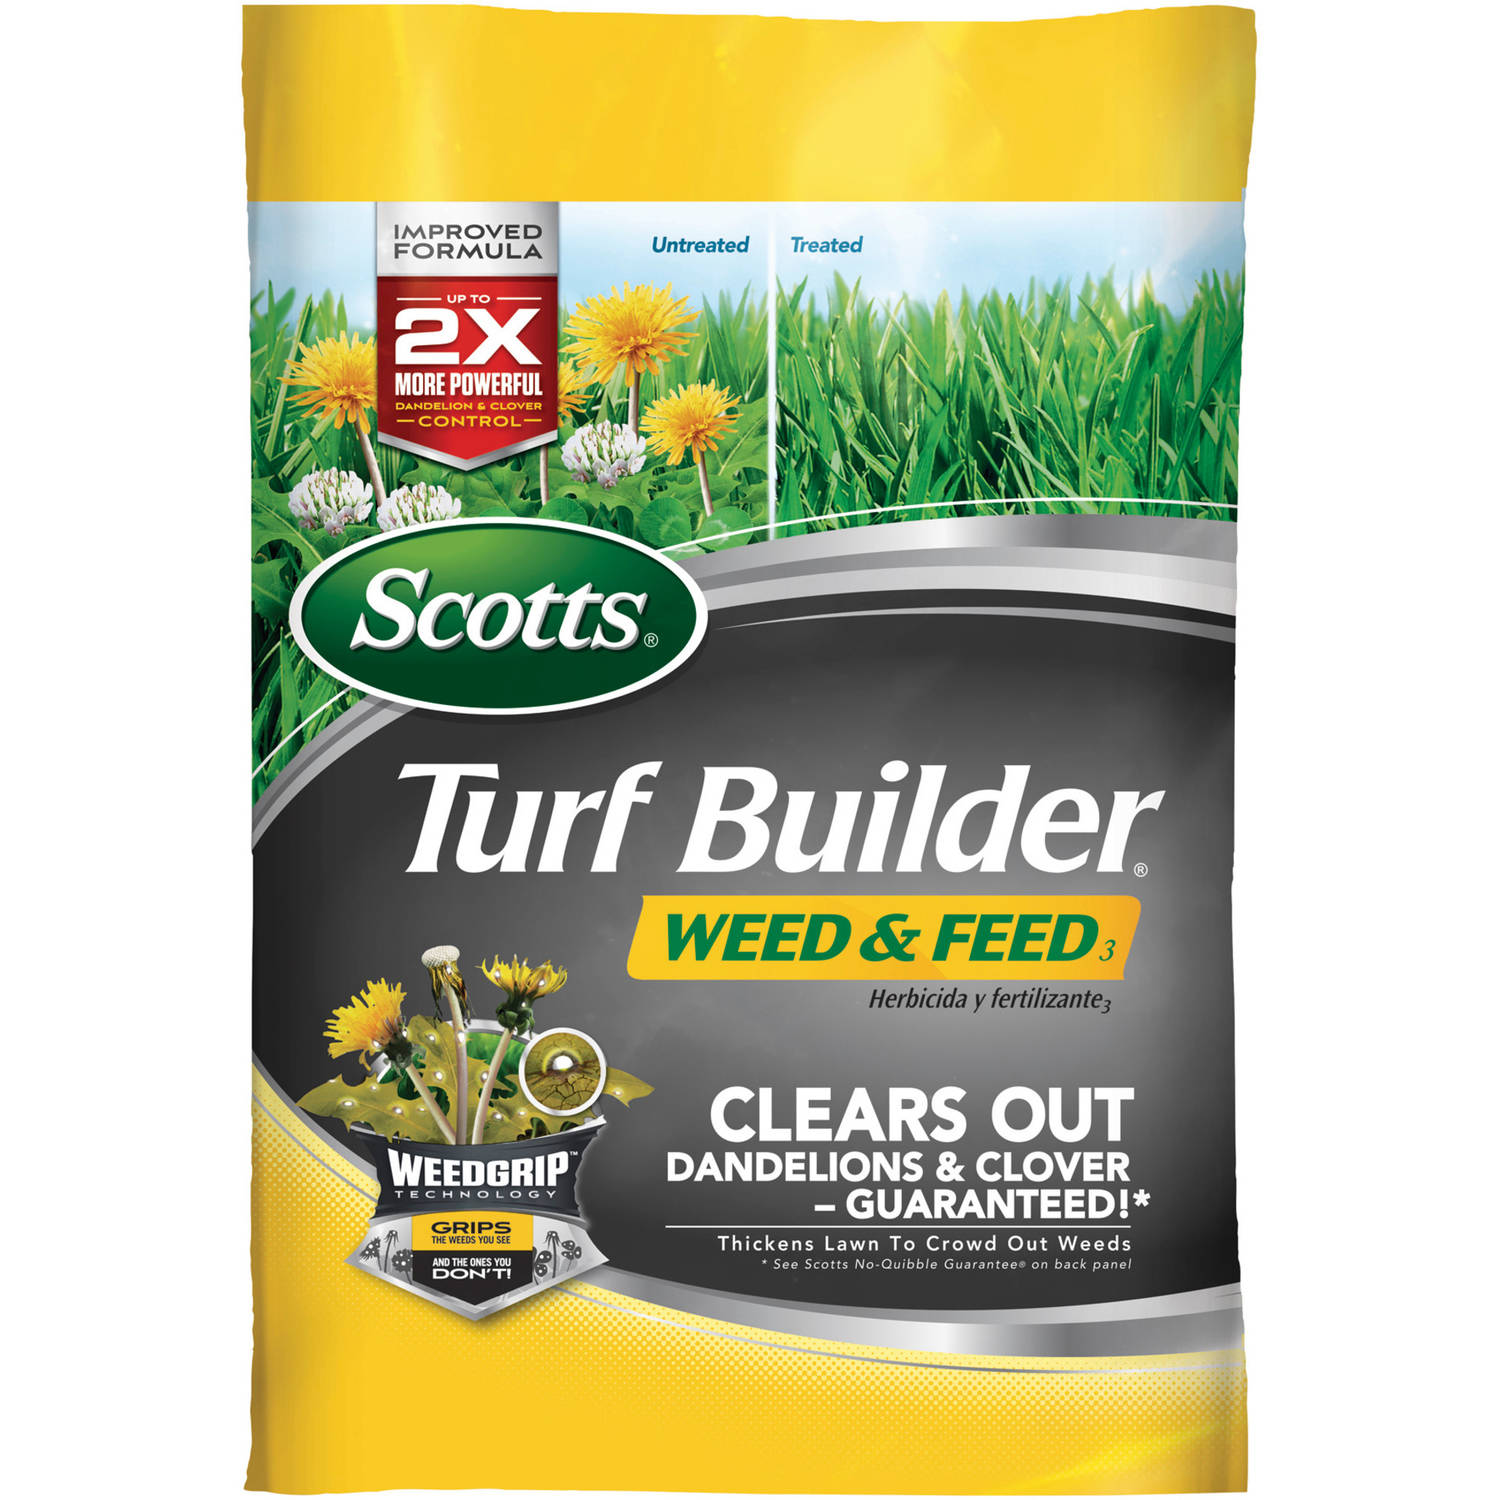 Scotts Turf Builder Weed & Feed, 5,000 sq. ft.